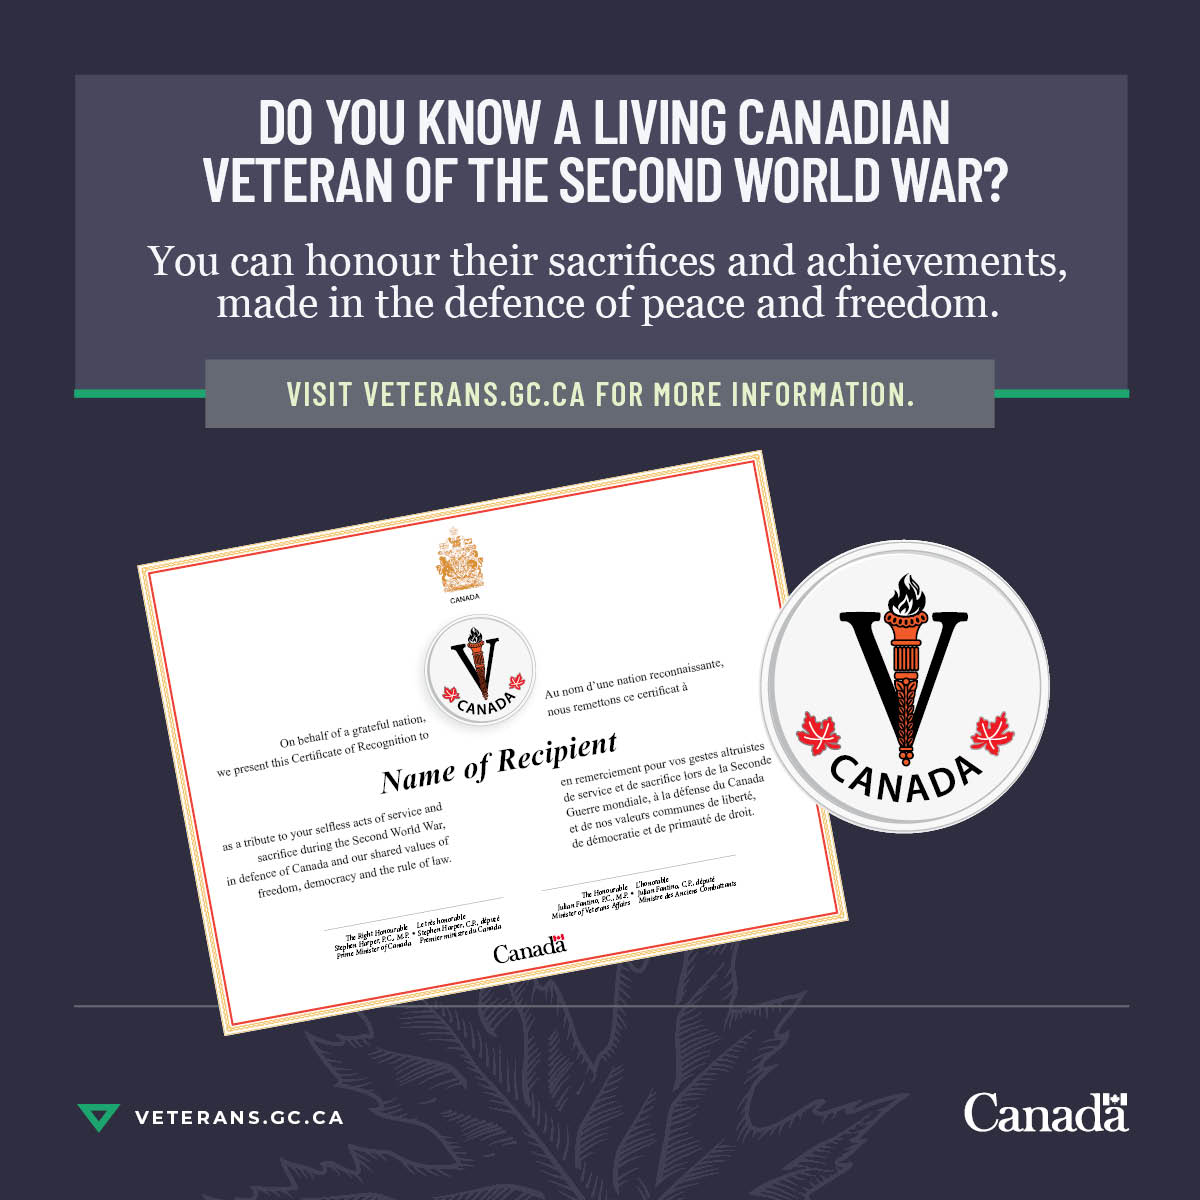 To mark the 75th anniversary of Canada's engagement in the Second World War, those were served may receive a certificate signed by the Minister of Veterans Affairs, a letter and special lapel pin from VAC. You can learn more here: veterans.gc.ca/eng/remembranc…